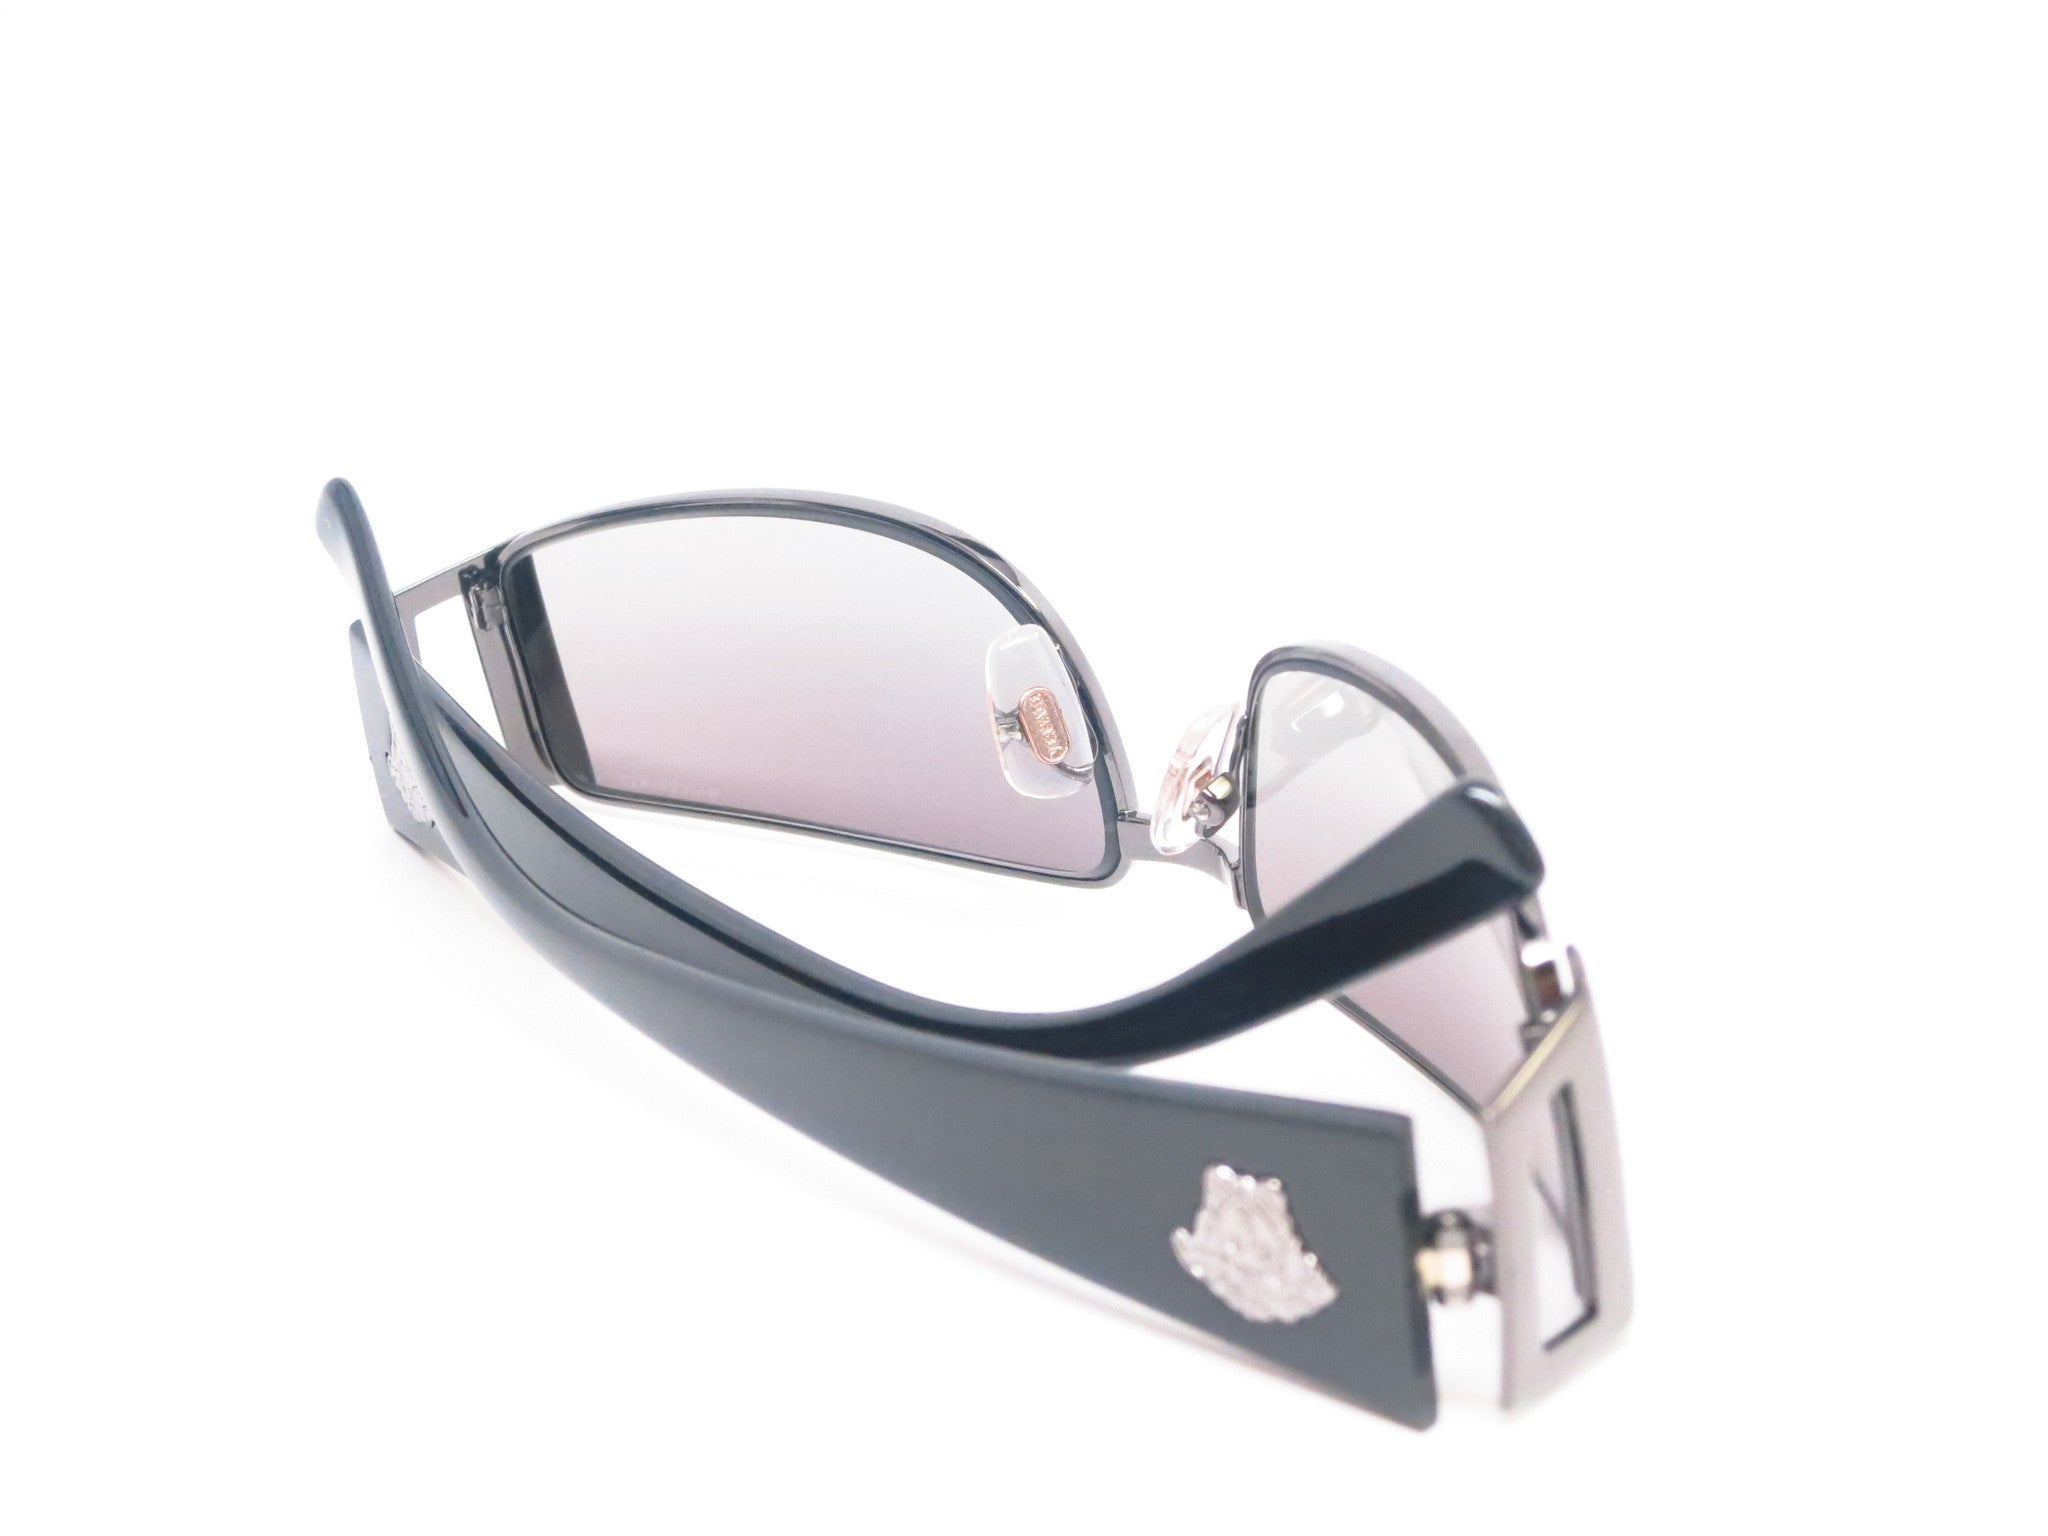 9641f45c3cb1 ... Versace VE 2021 Gunmetal 1001 11 Gunmetal Sunglasses - Eye Heart Shades  - Versace -